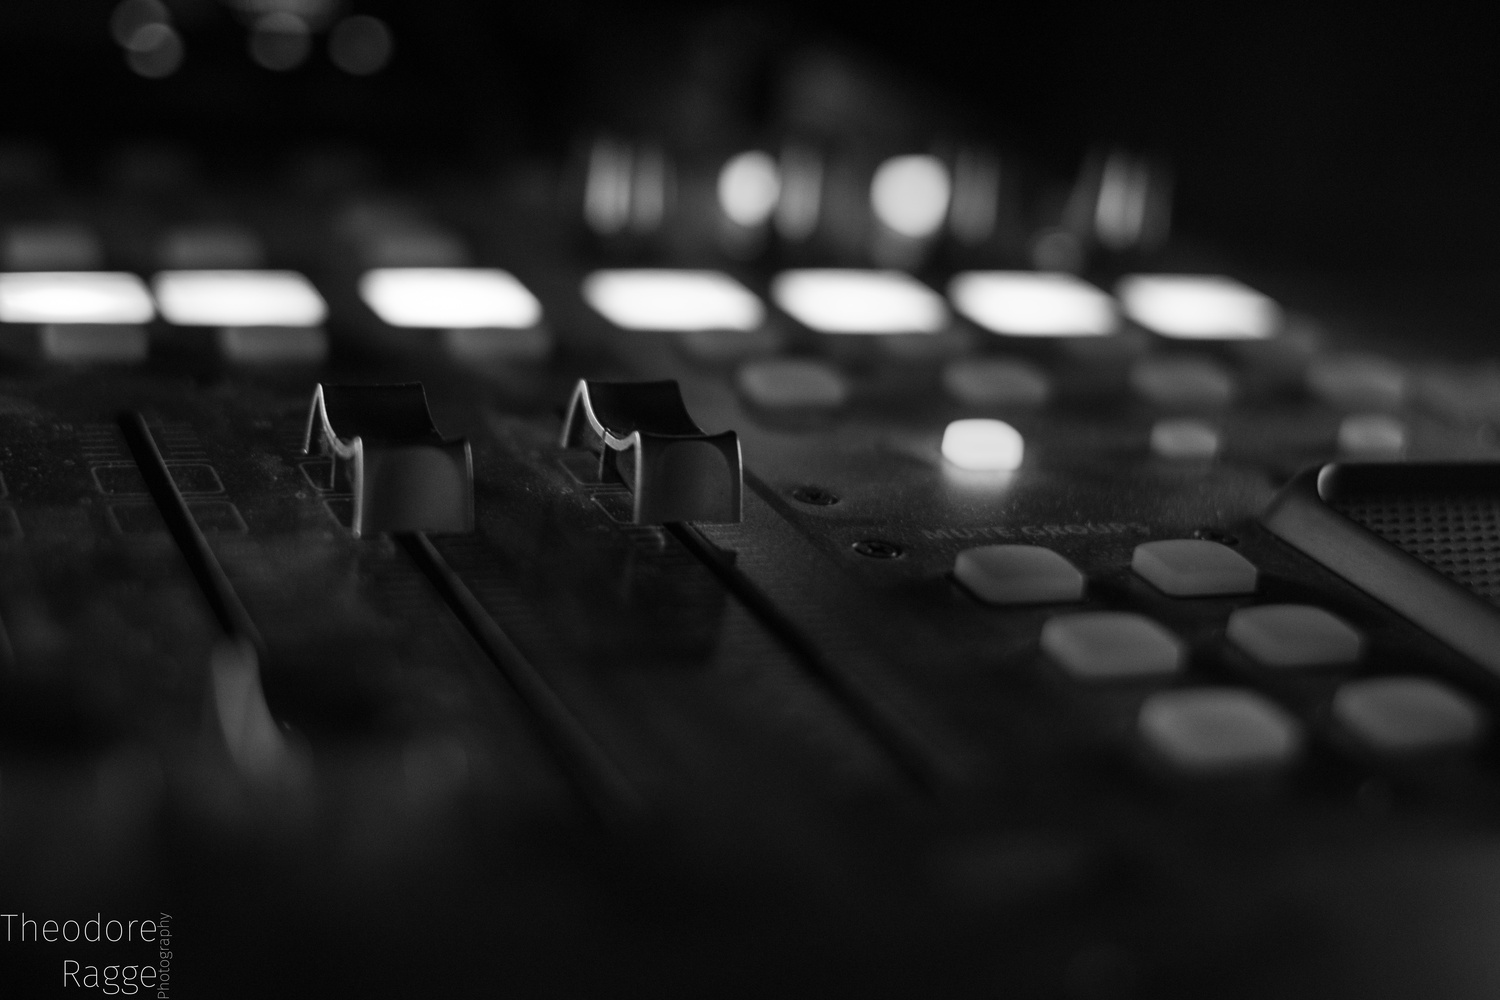 Behringer X32 by Theodore Ragge